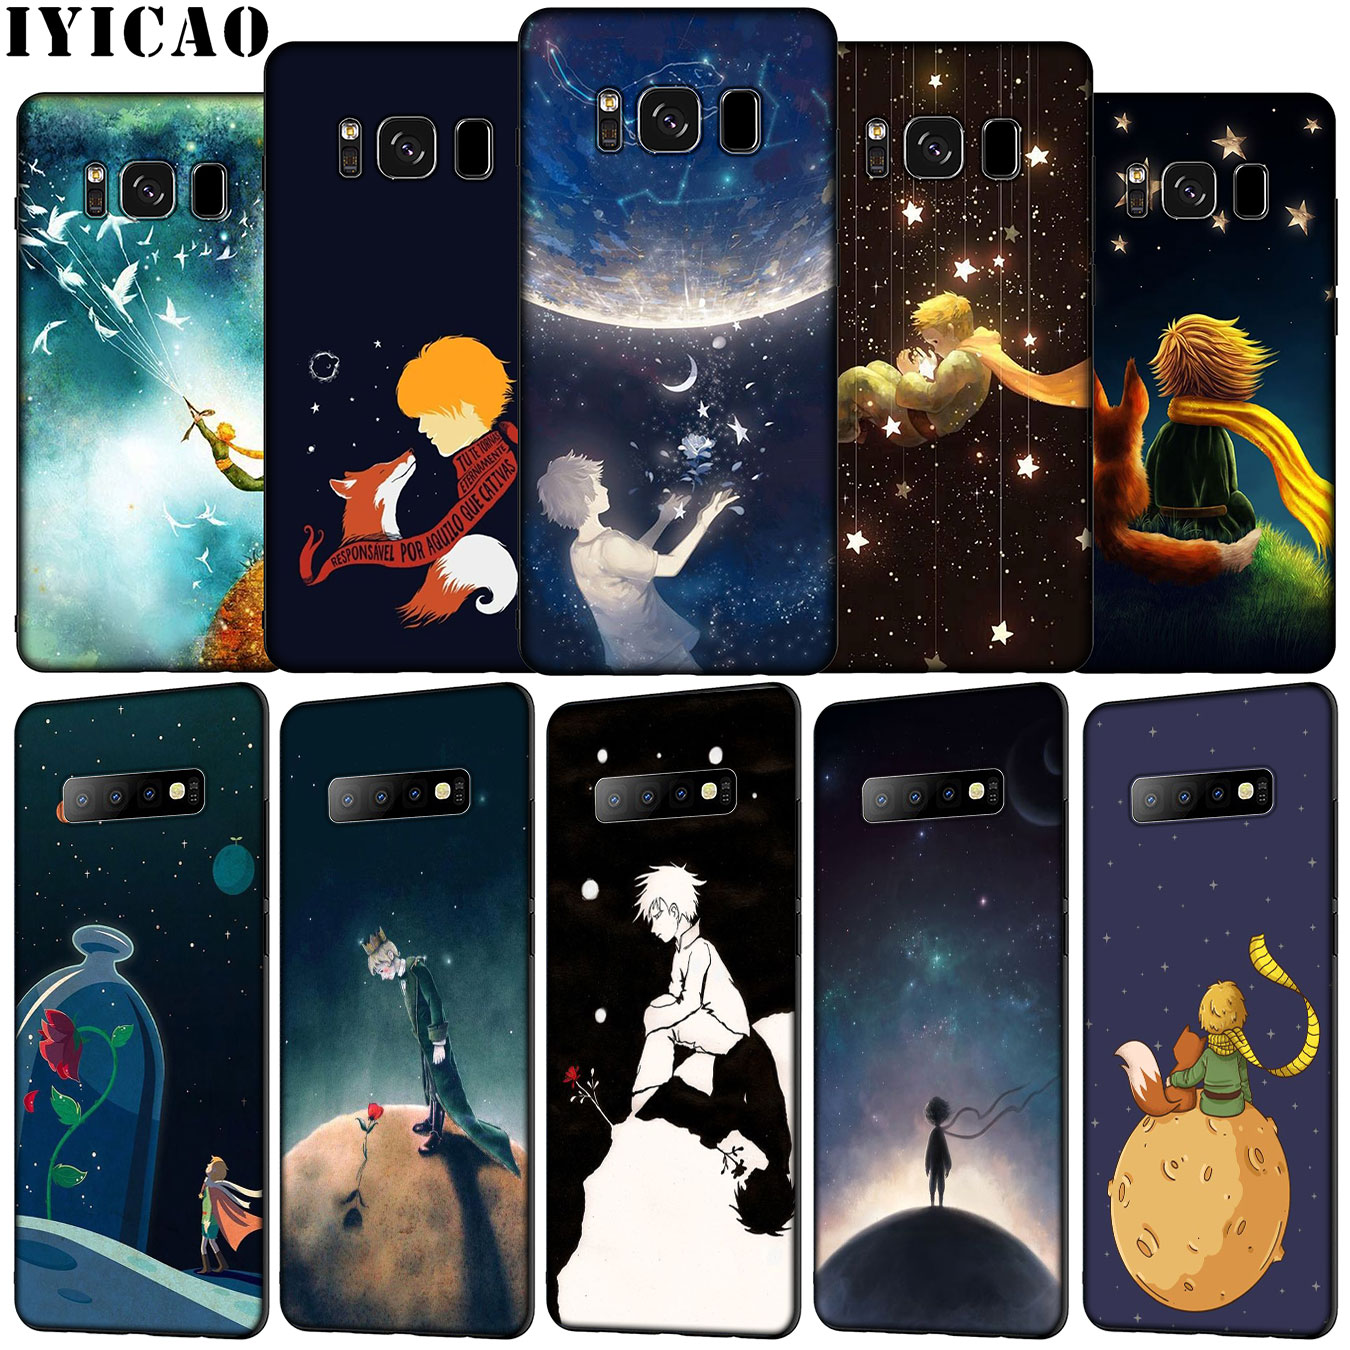 IYICAO The Little Prince Soft Silicone Phone Case for Samsung Galaxy S20 Ultra S10e S9 S8 Plus S6 S7 Edge S10 Lite Cover image